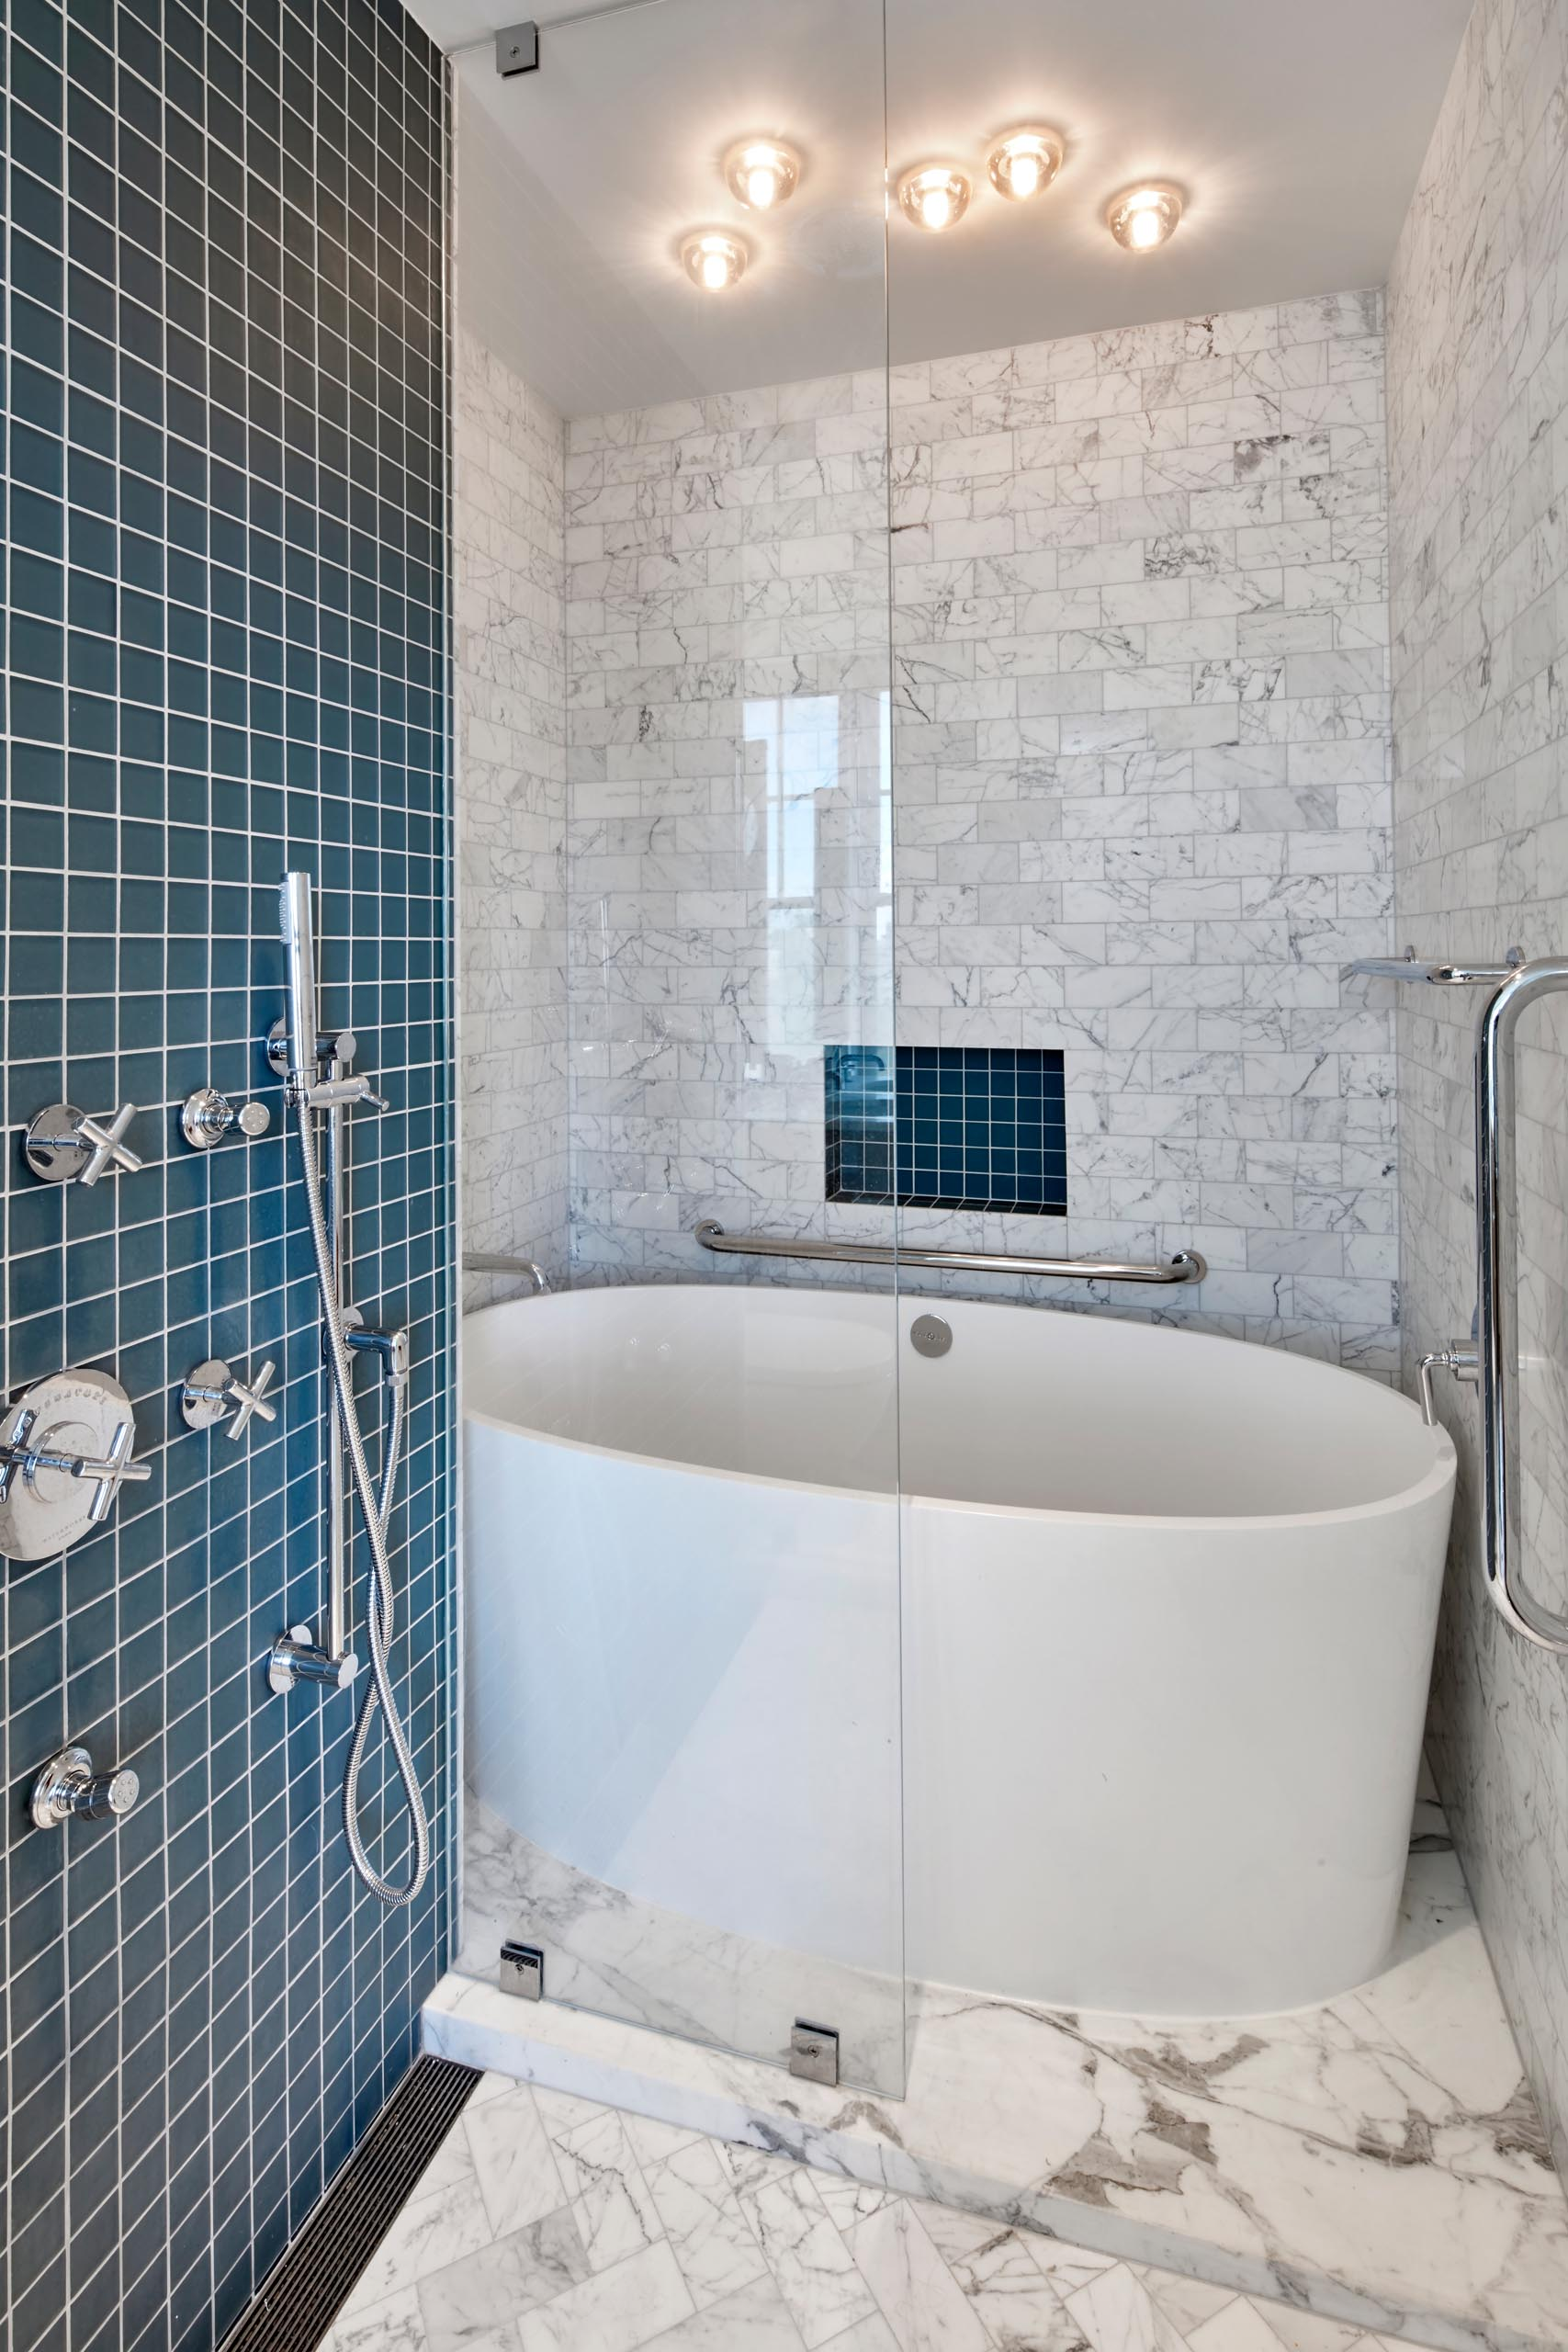 A modern bathroom with white soaking tub, gray marble subway tiles, and shower and a shelving niche lined with square turquoise tiles.